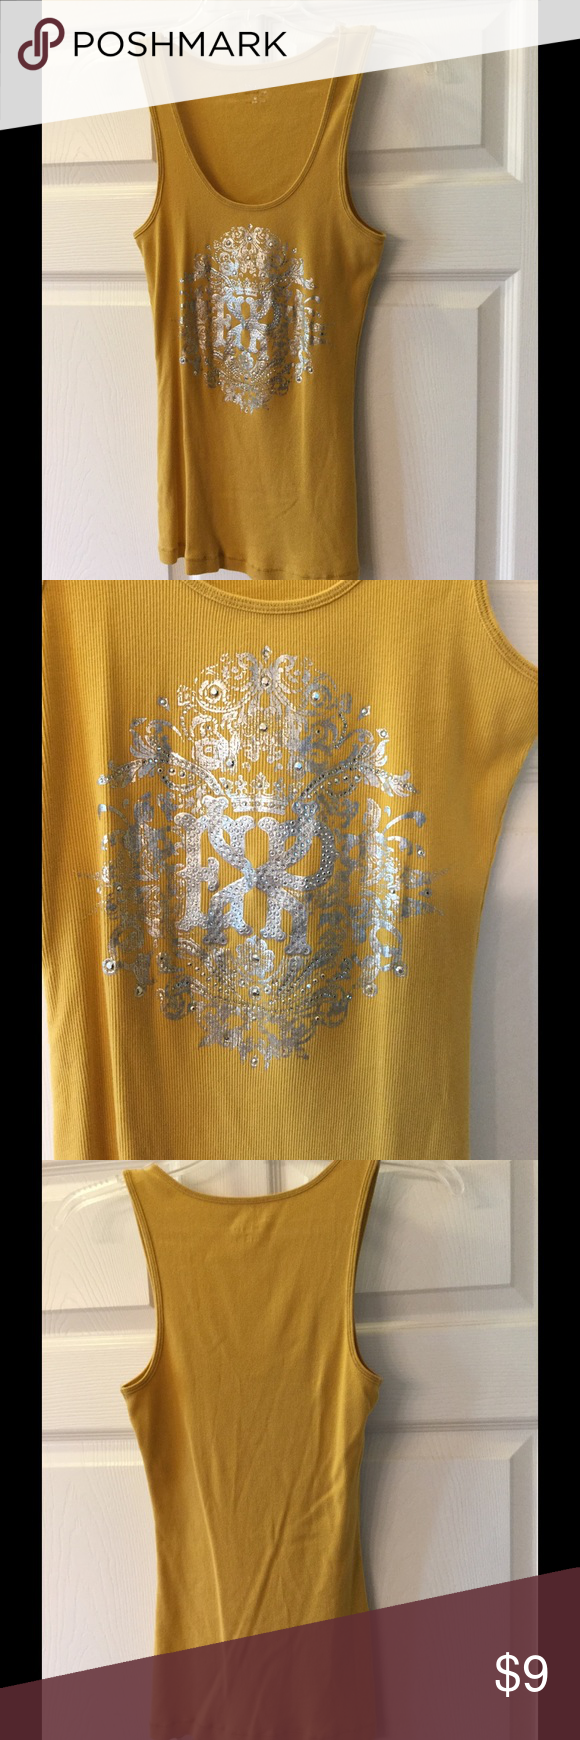 Racerback Tank This is an Express Racerback tank top.  It is a mustard yellow'ish color, with silver accents.  If you have any questions, please ask! Prices are always negotiable! Express Tops Tank Tops